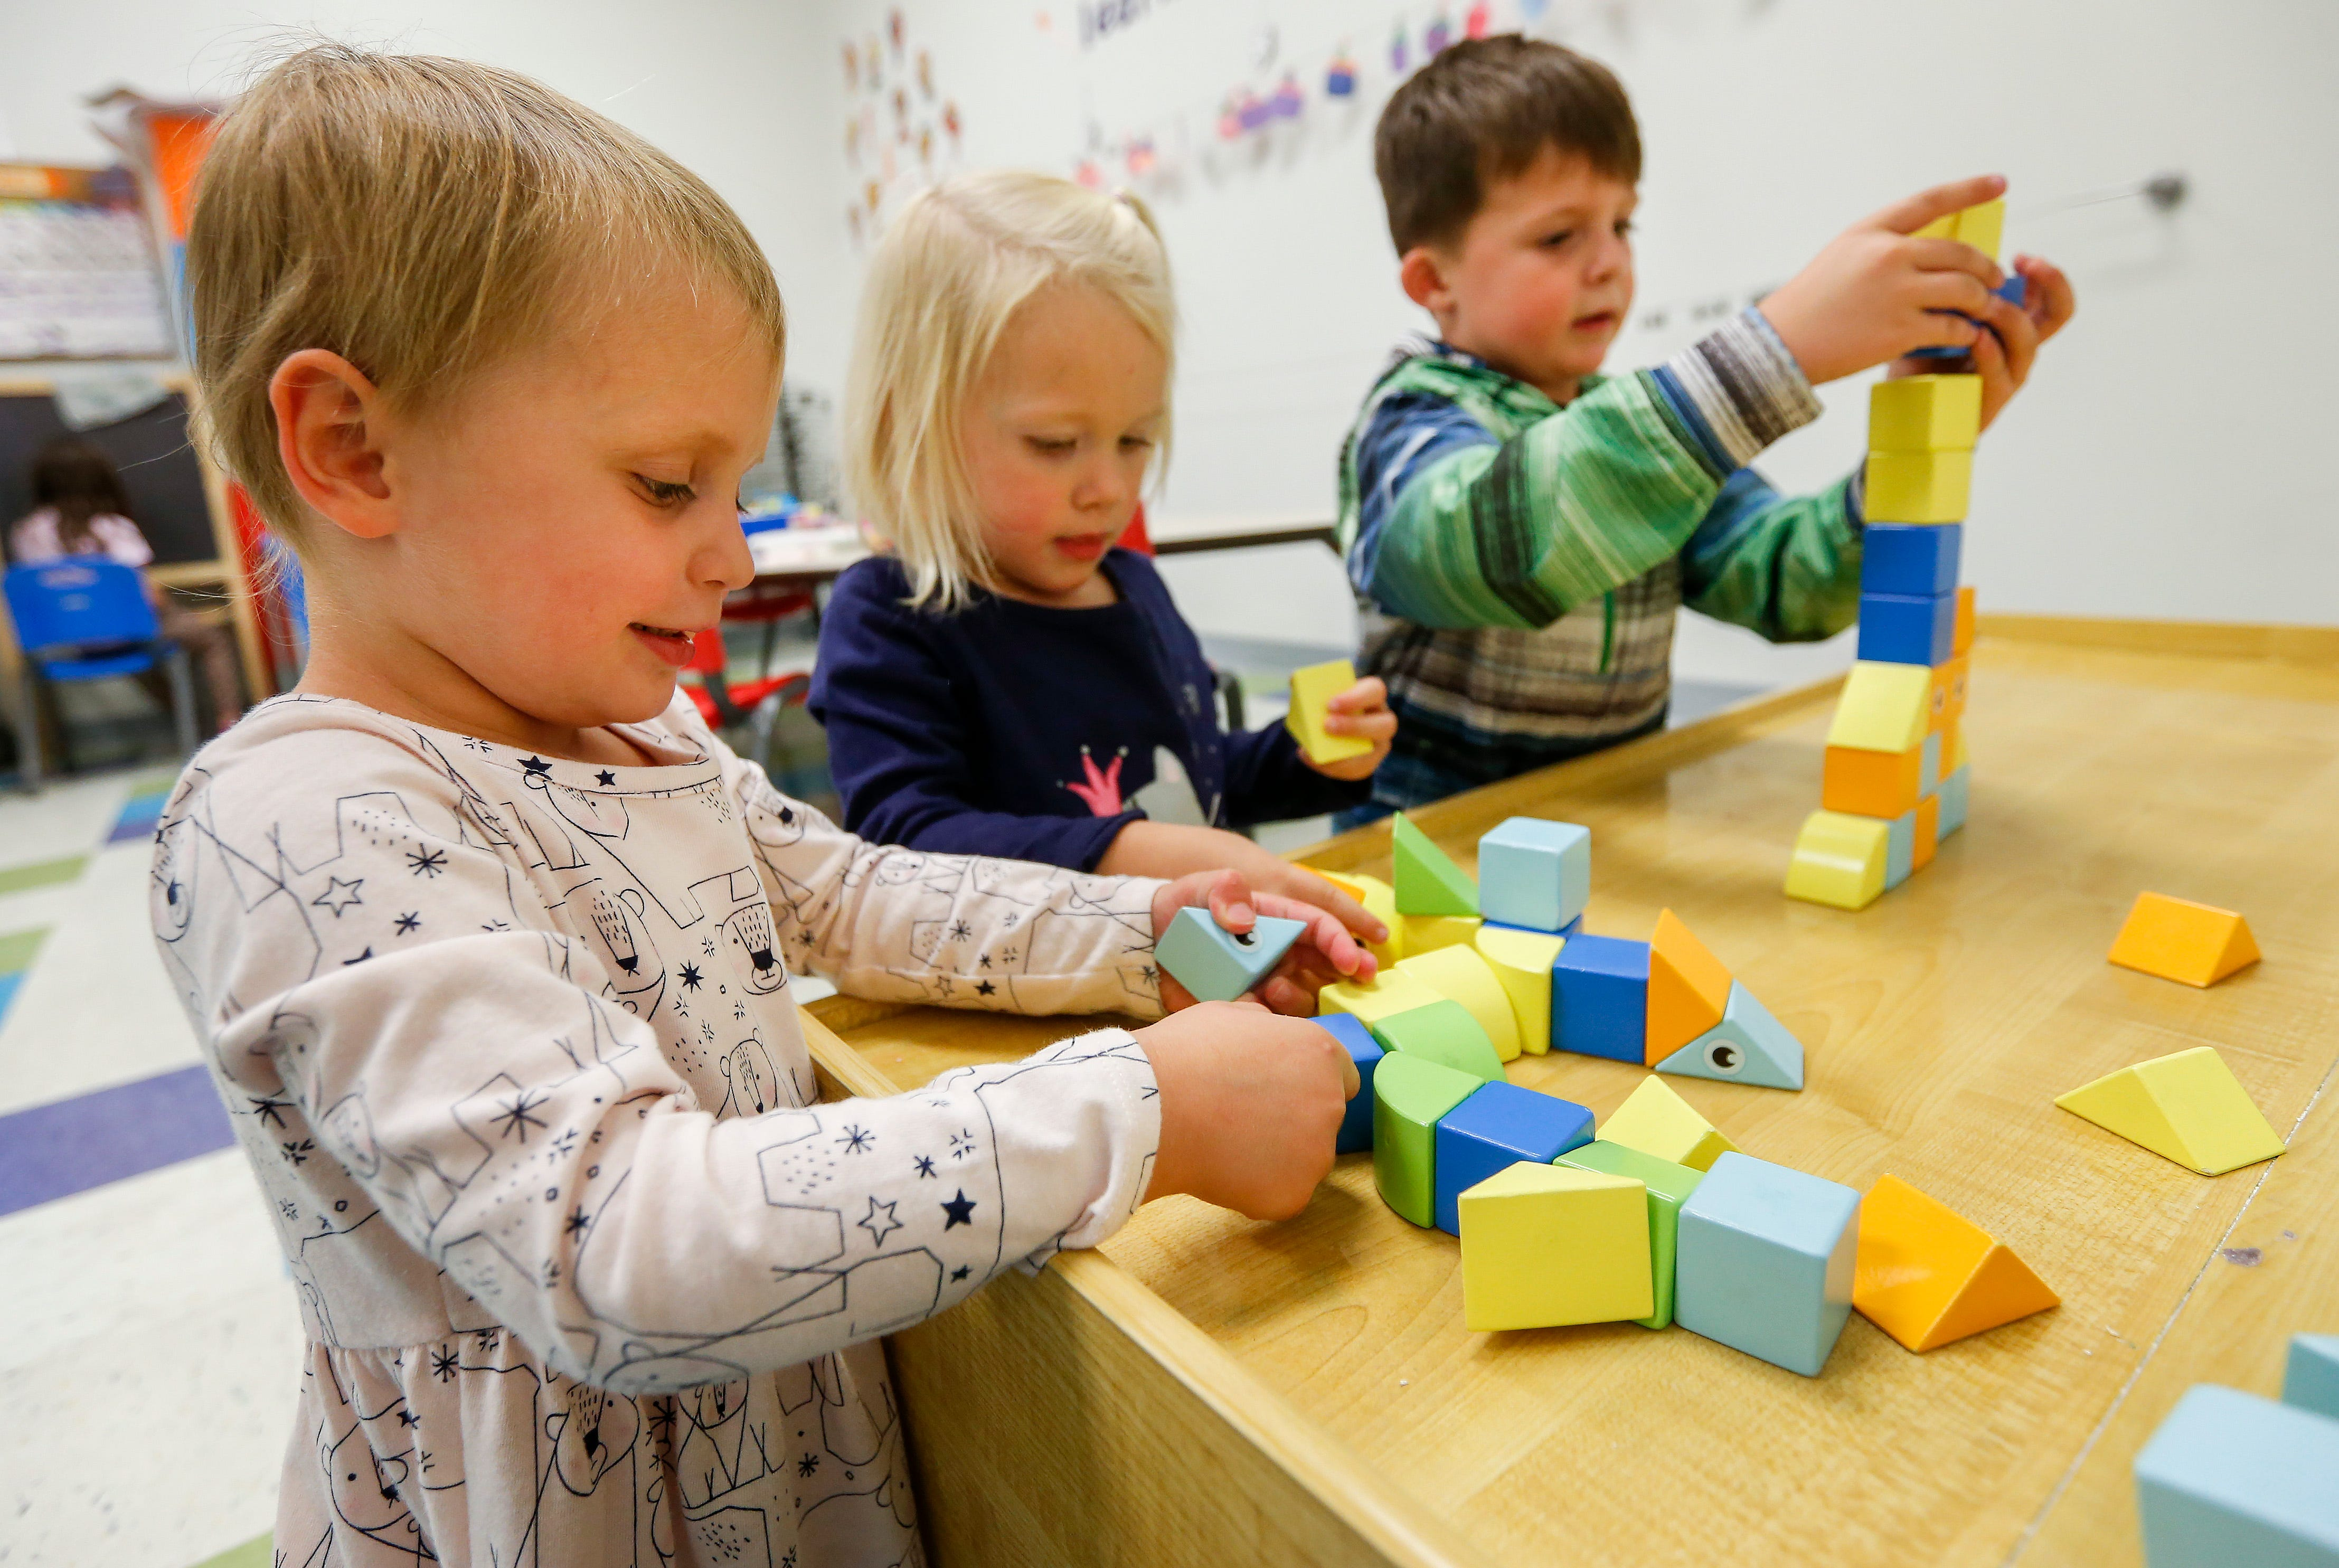 From left, Sutton Hamlet, 3, Amelia Shoemaker, 2, and Jamison Hamlet, 4, play with magnetic wooden blocks that were created by Craig and Fawn Rechkemmer, owners of Itty Bitty City.